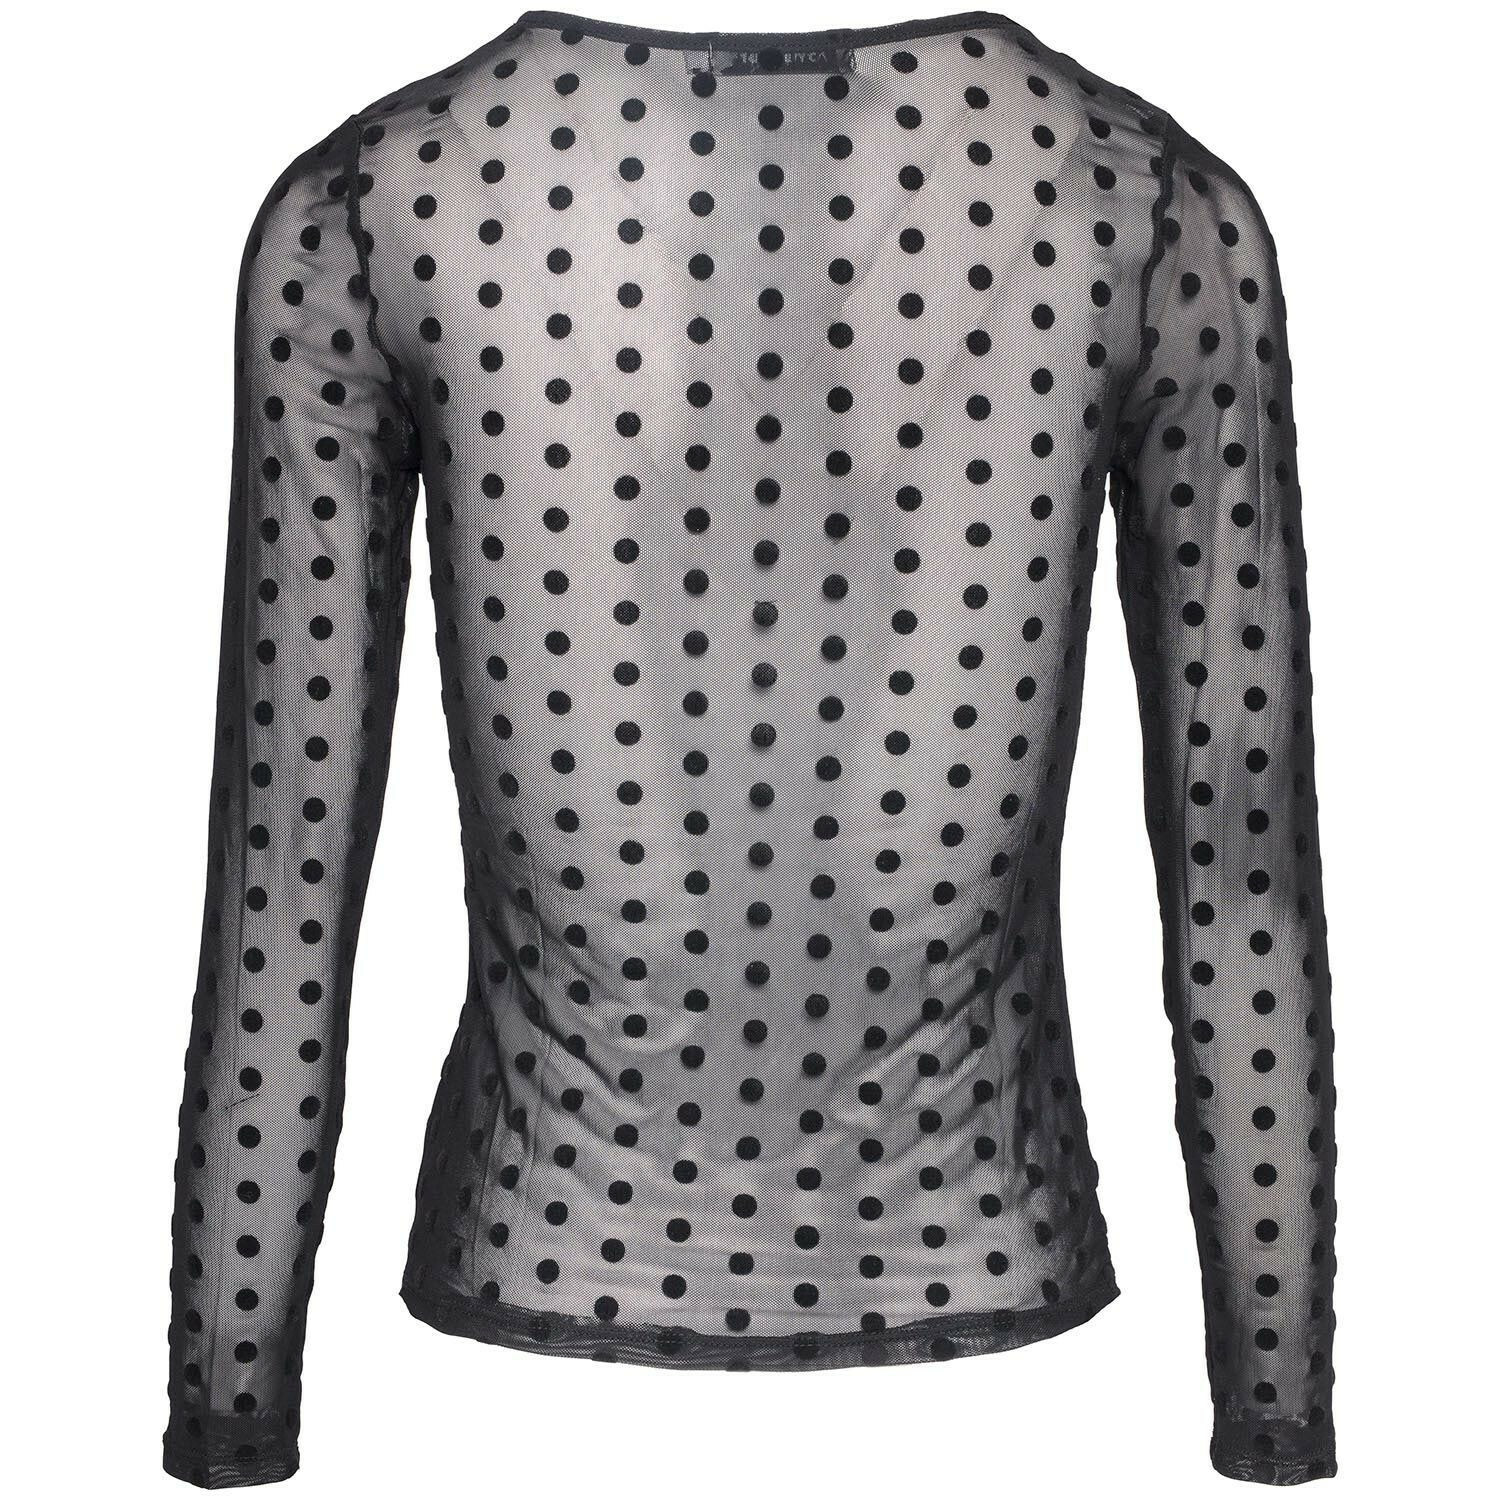 MESHED UP DOTS TOP